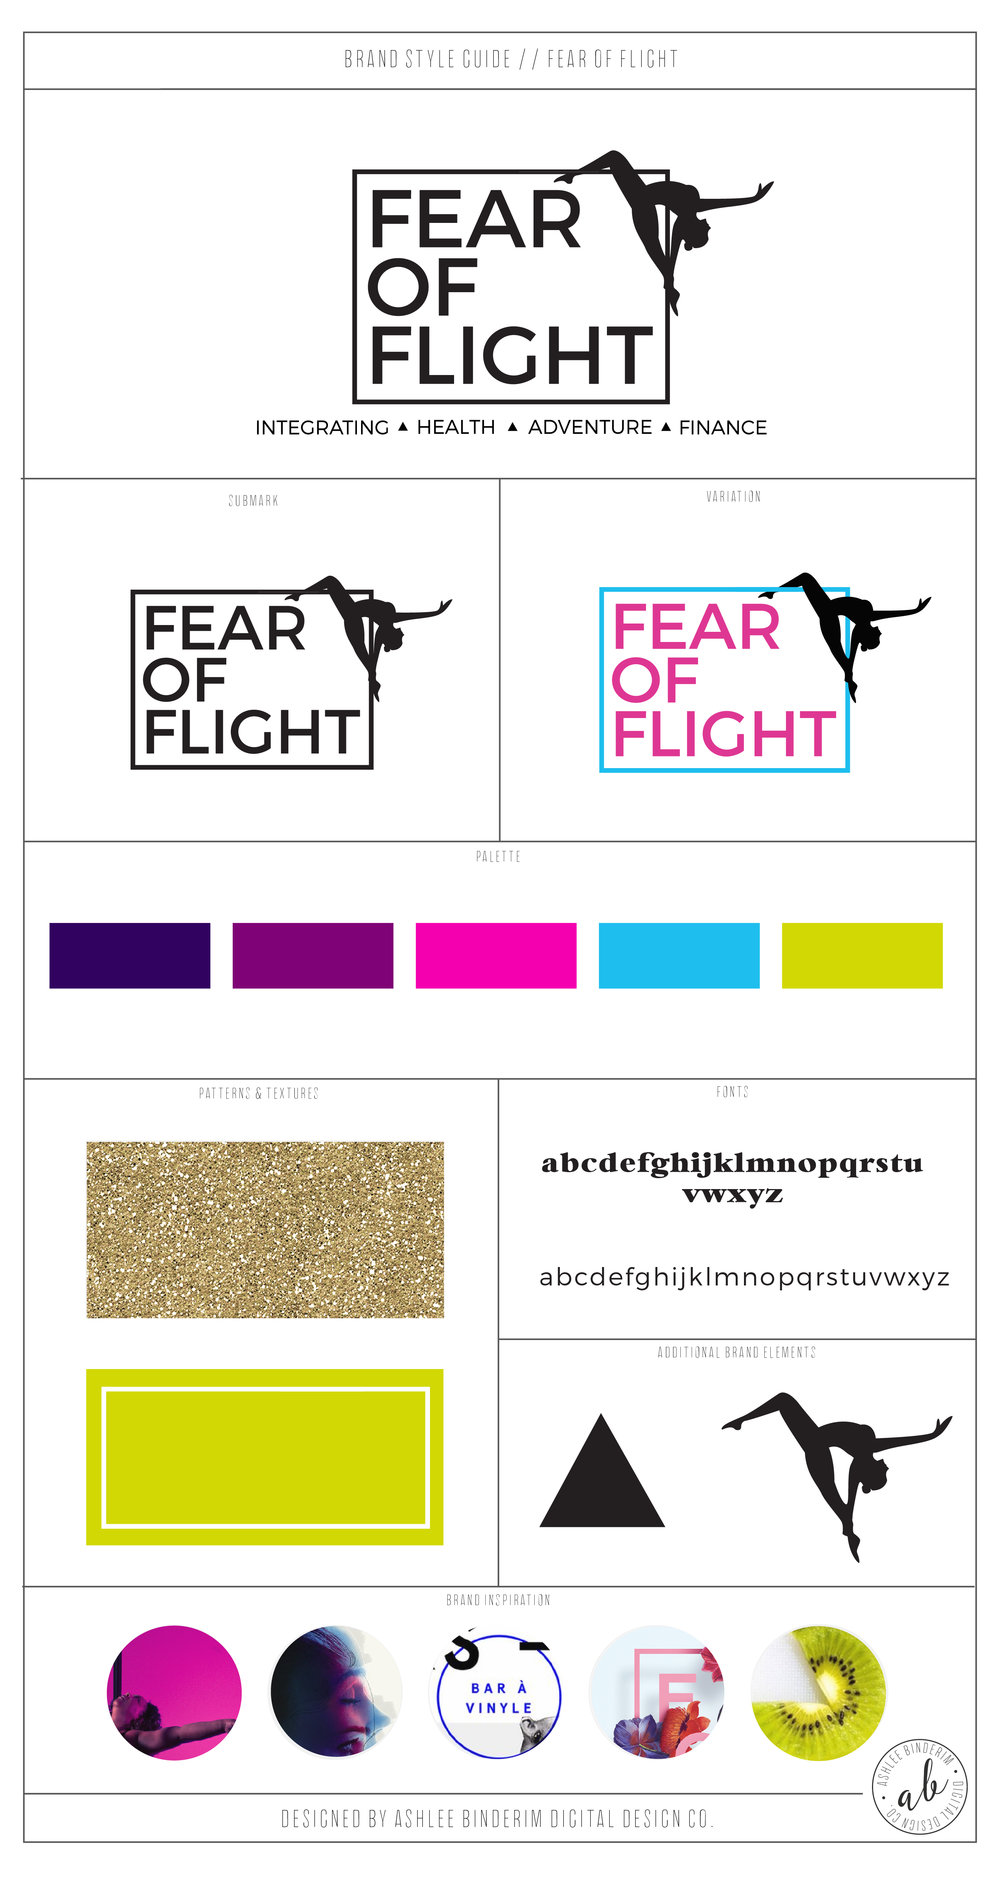 Fear of Flight Brand Style Guide